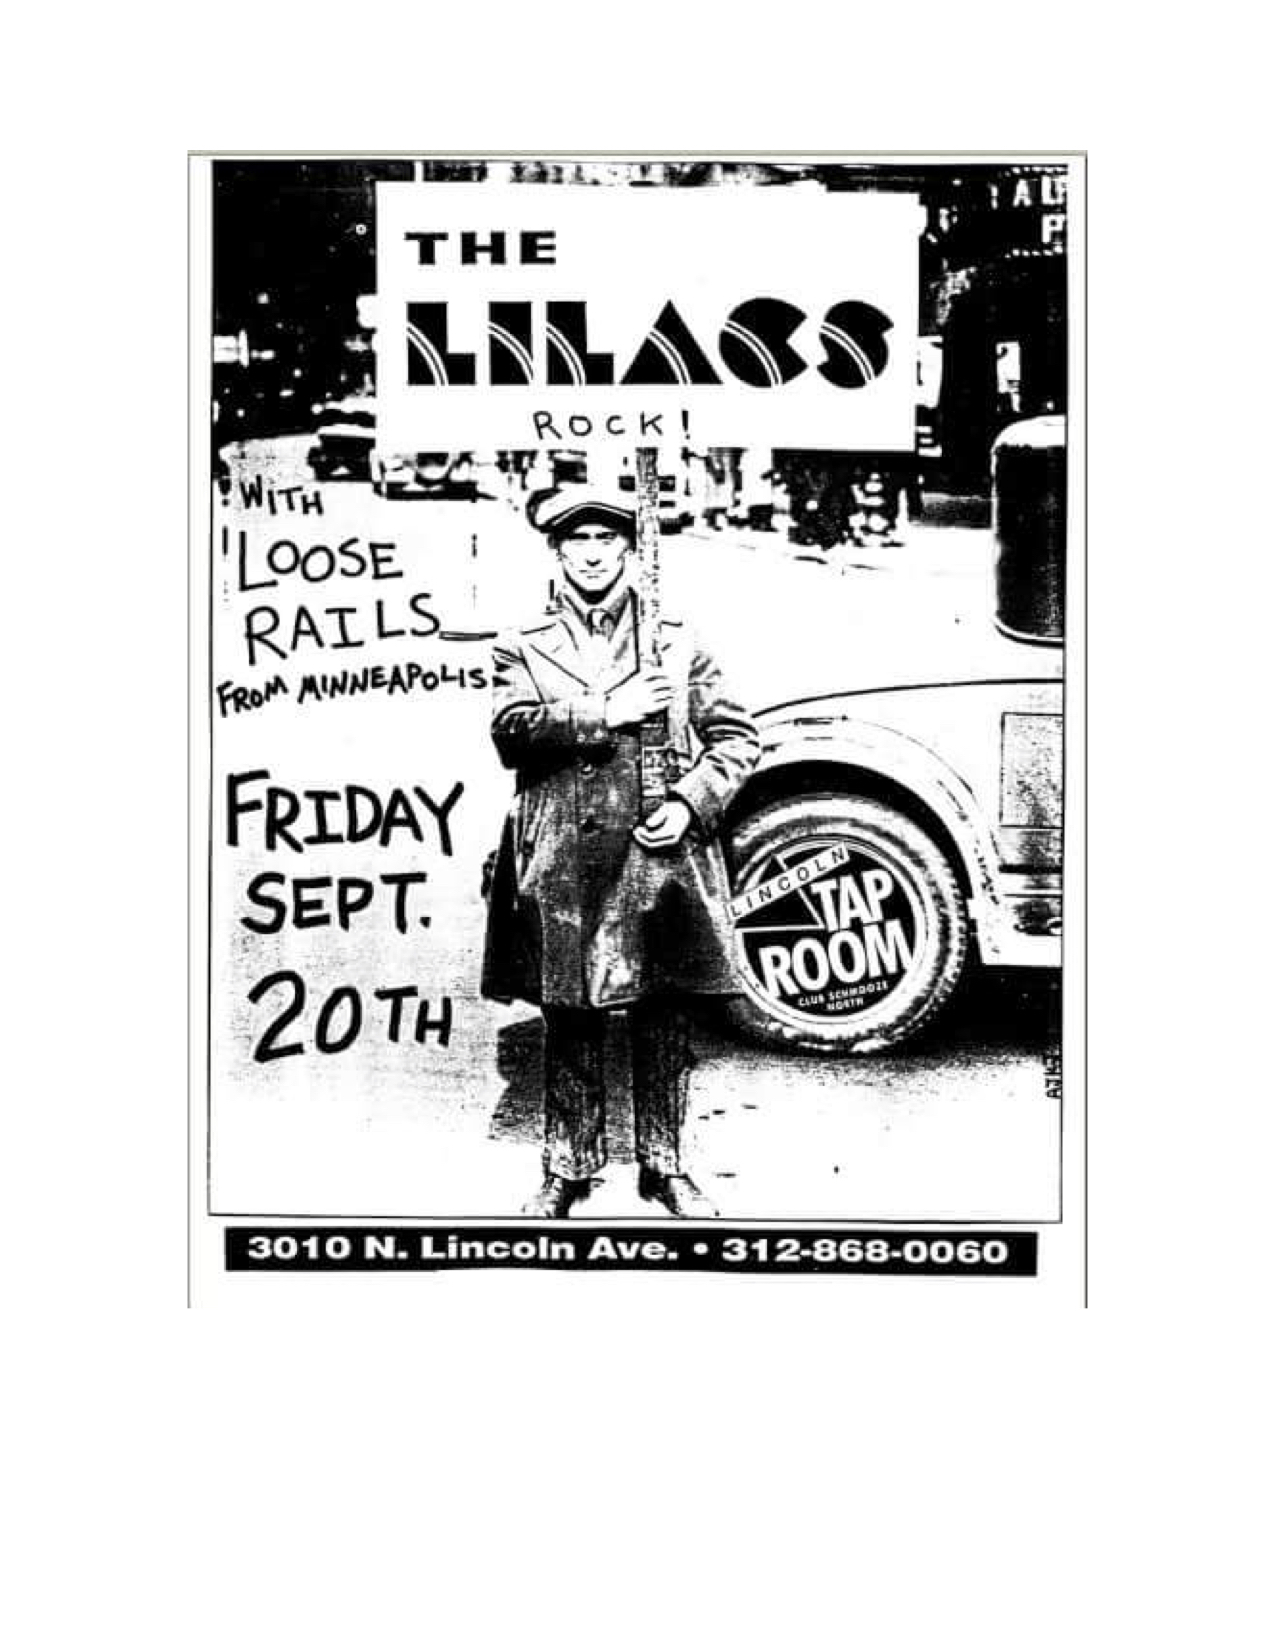 The Lilacs Poster 16 (Loose Rails).jpg